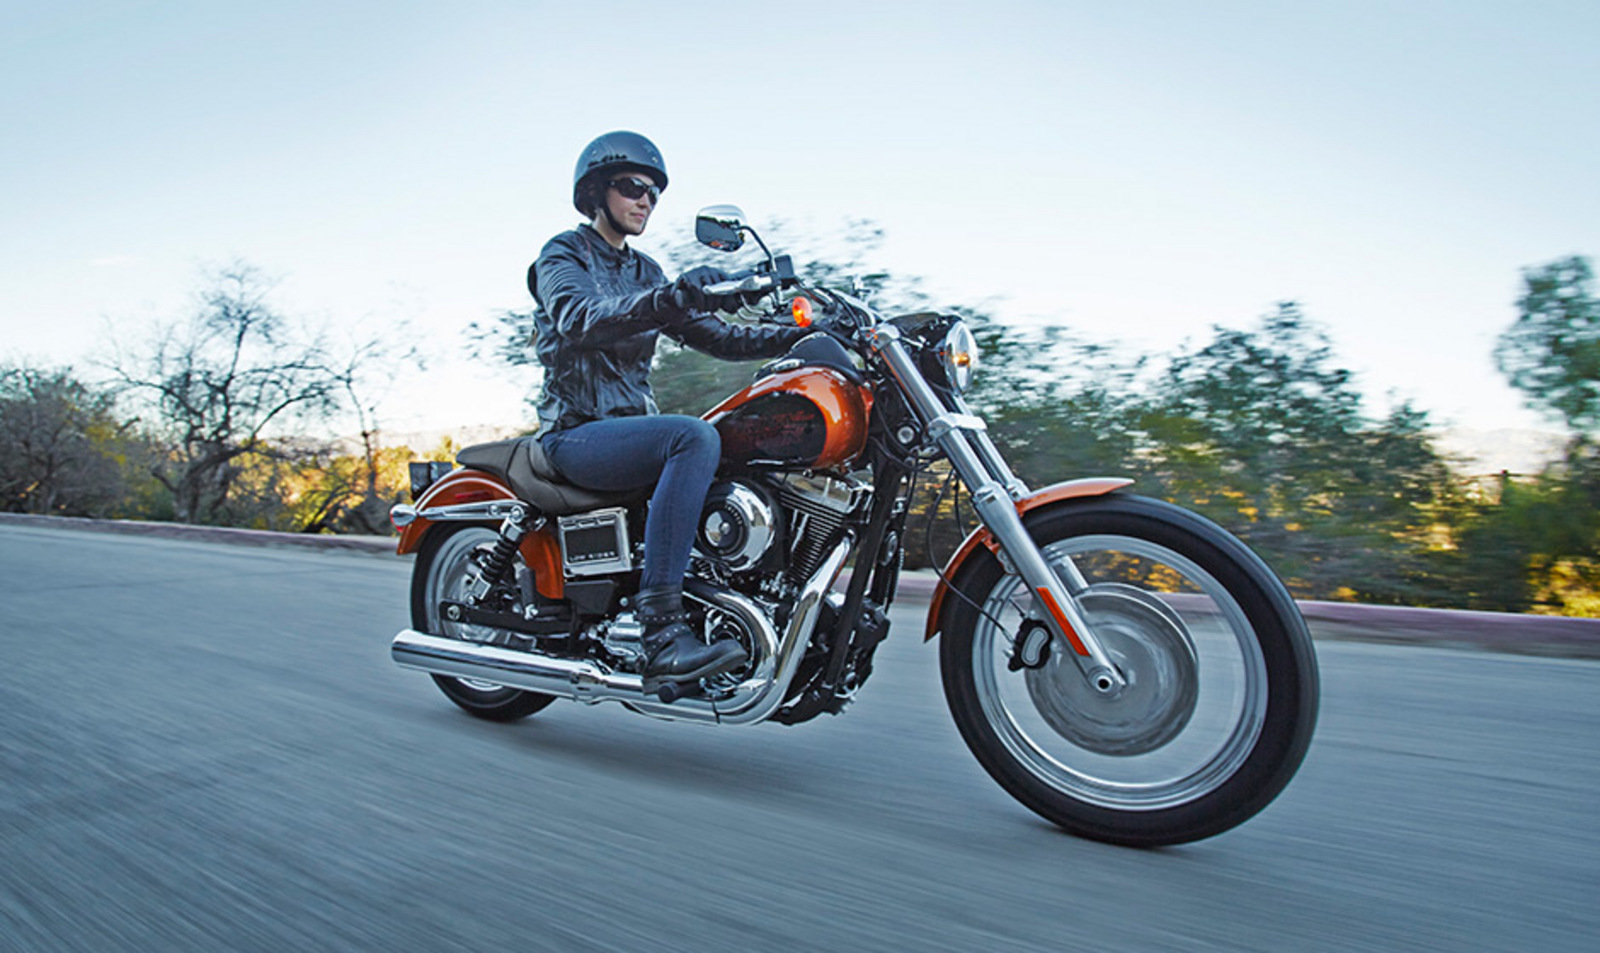 Harley Riders: 2014 Harley Davidson Dyna Low Rider Review